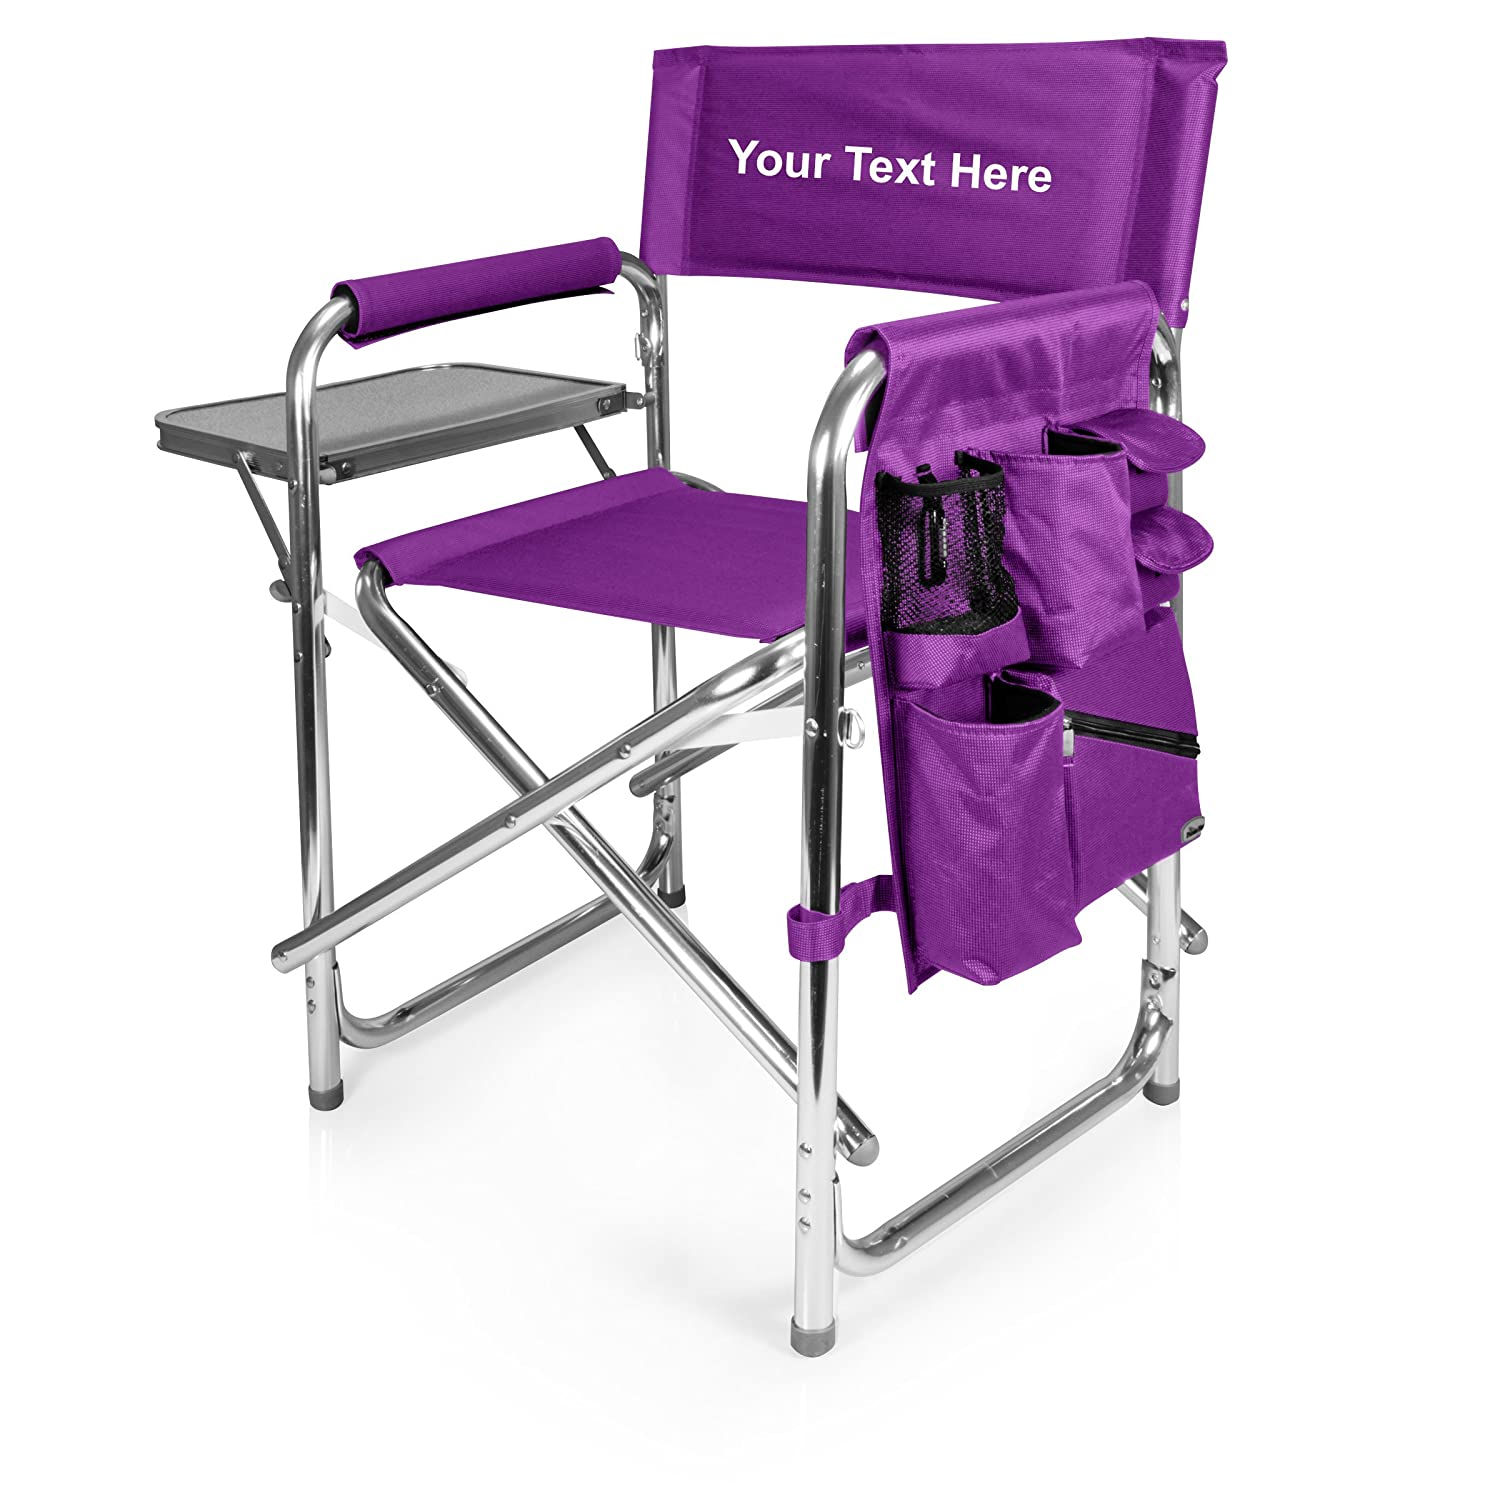 Wondrous Personalized Embroidered Sports Director Chair With Side Table And Pocket Unemploymentrelief Wooden Chair Designs For Living Room Unemploymentrelieforg